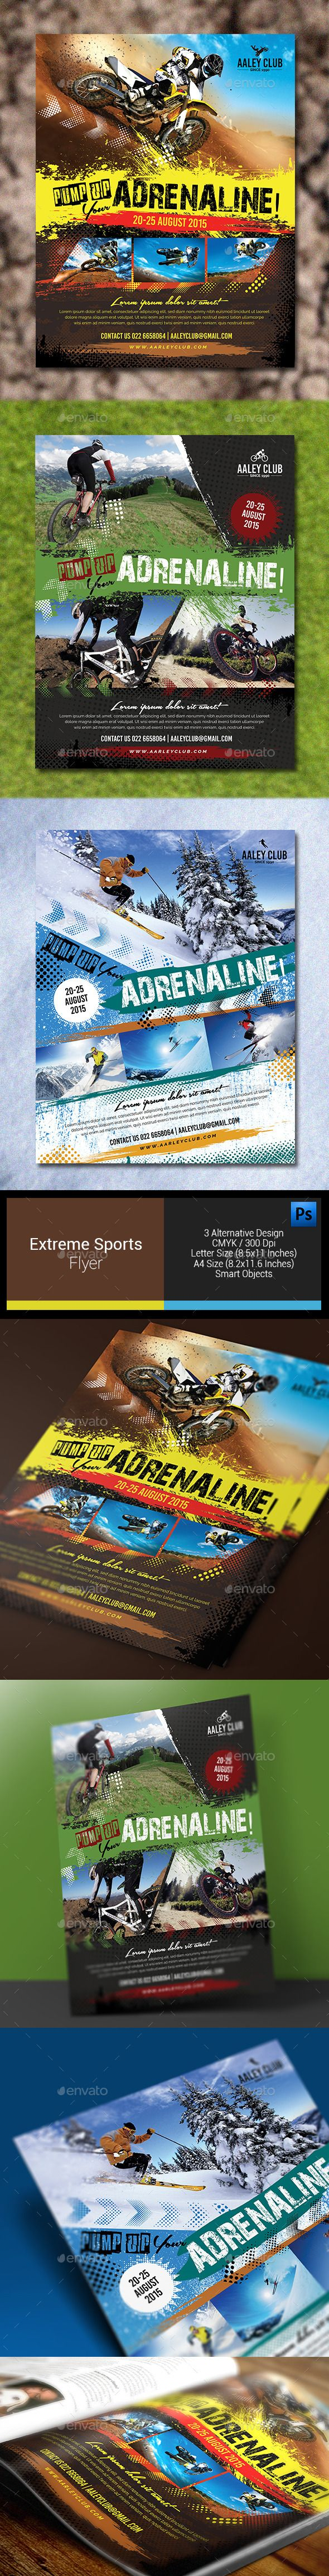 Extreme Sports Flyer / Magazine Ad Template PSD #design Download: http://graphicriver.net/item/extreme-sports-flyer-magazine-ad/12817110?ref=ksioks